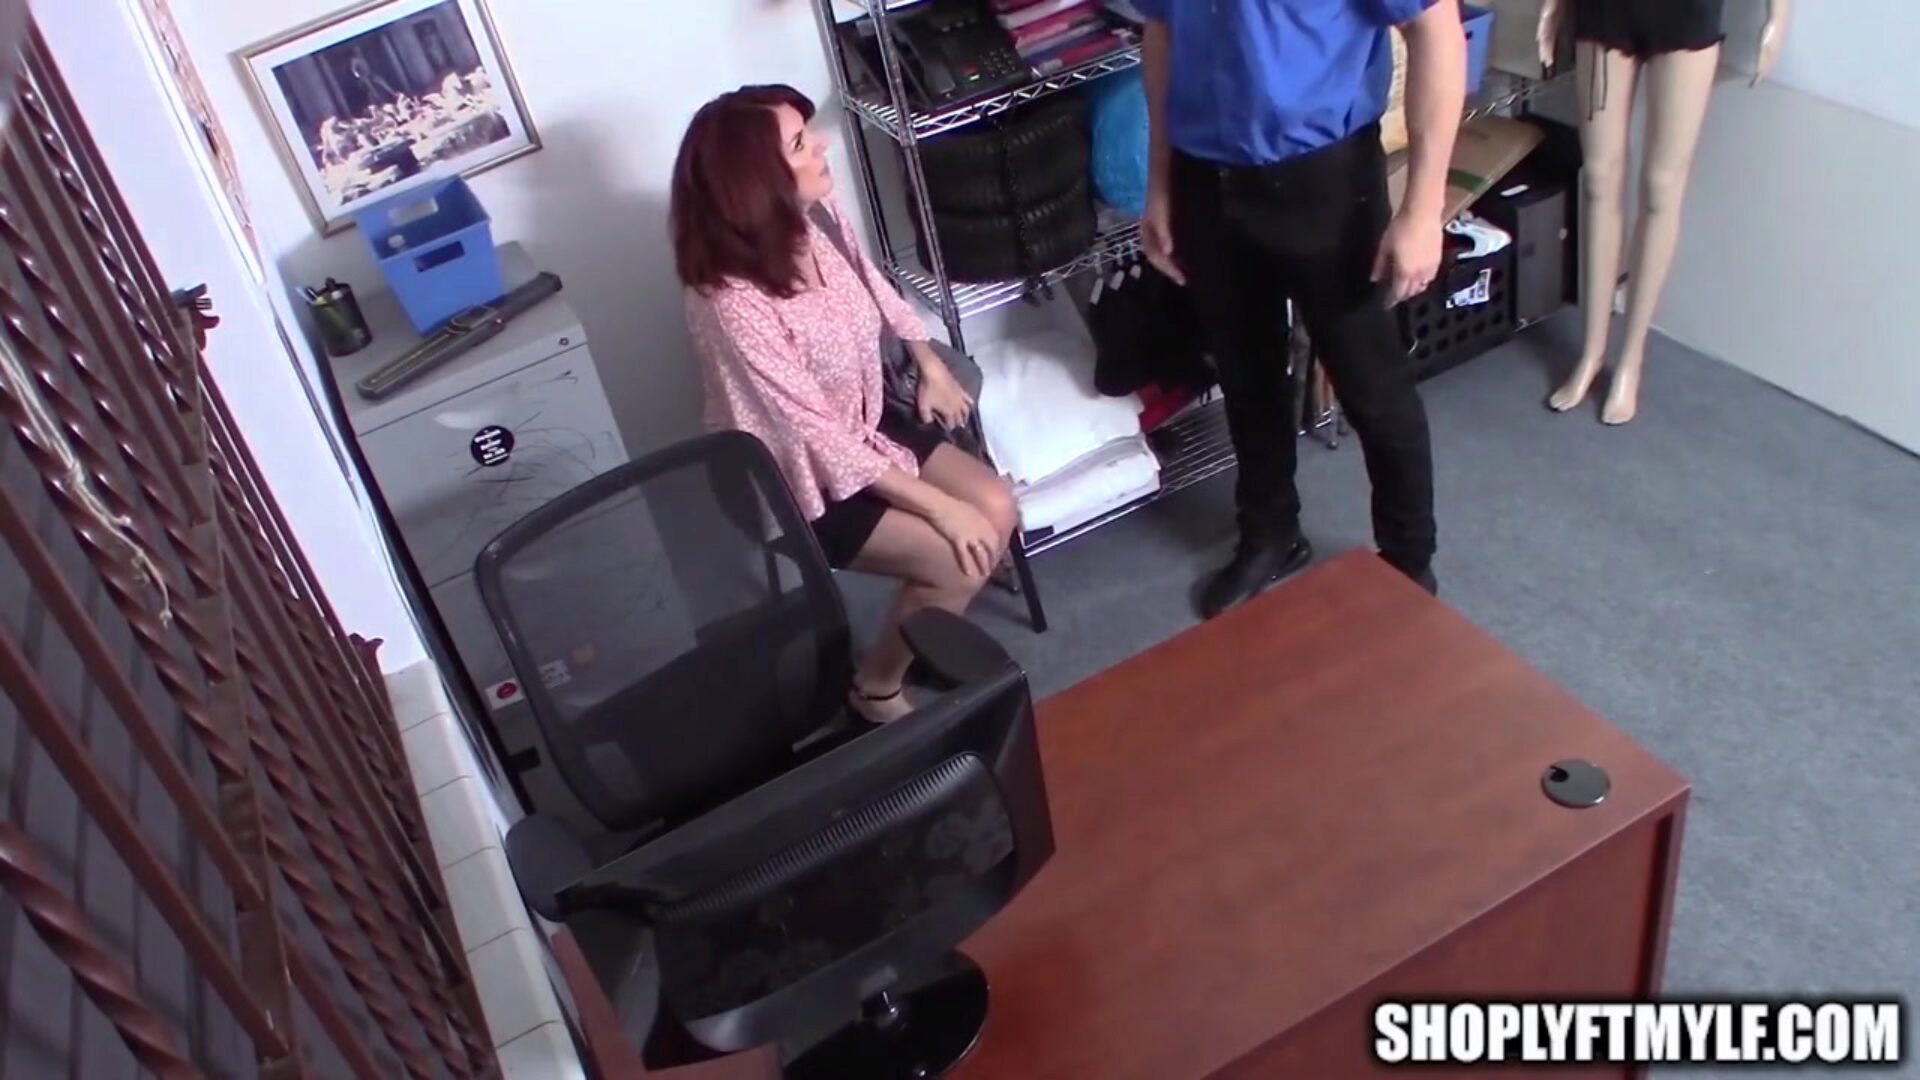 Big Tit Mature MILF Caught Shoplifting Fucks Security Guard Mature brunette MILF with large whoppers acquires caught stealing and this babe deepthroats and fucks the security guard so that babe doesnt have to go to jail